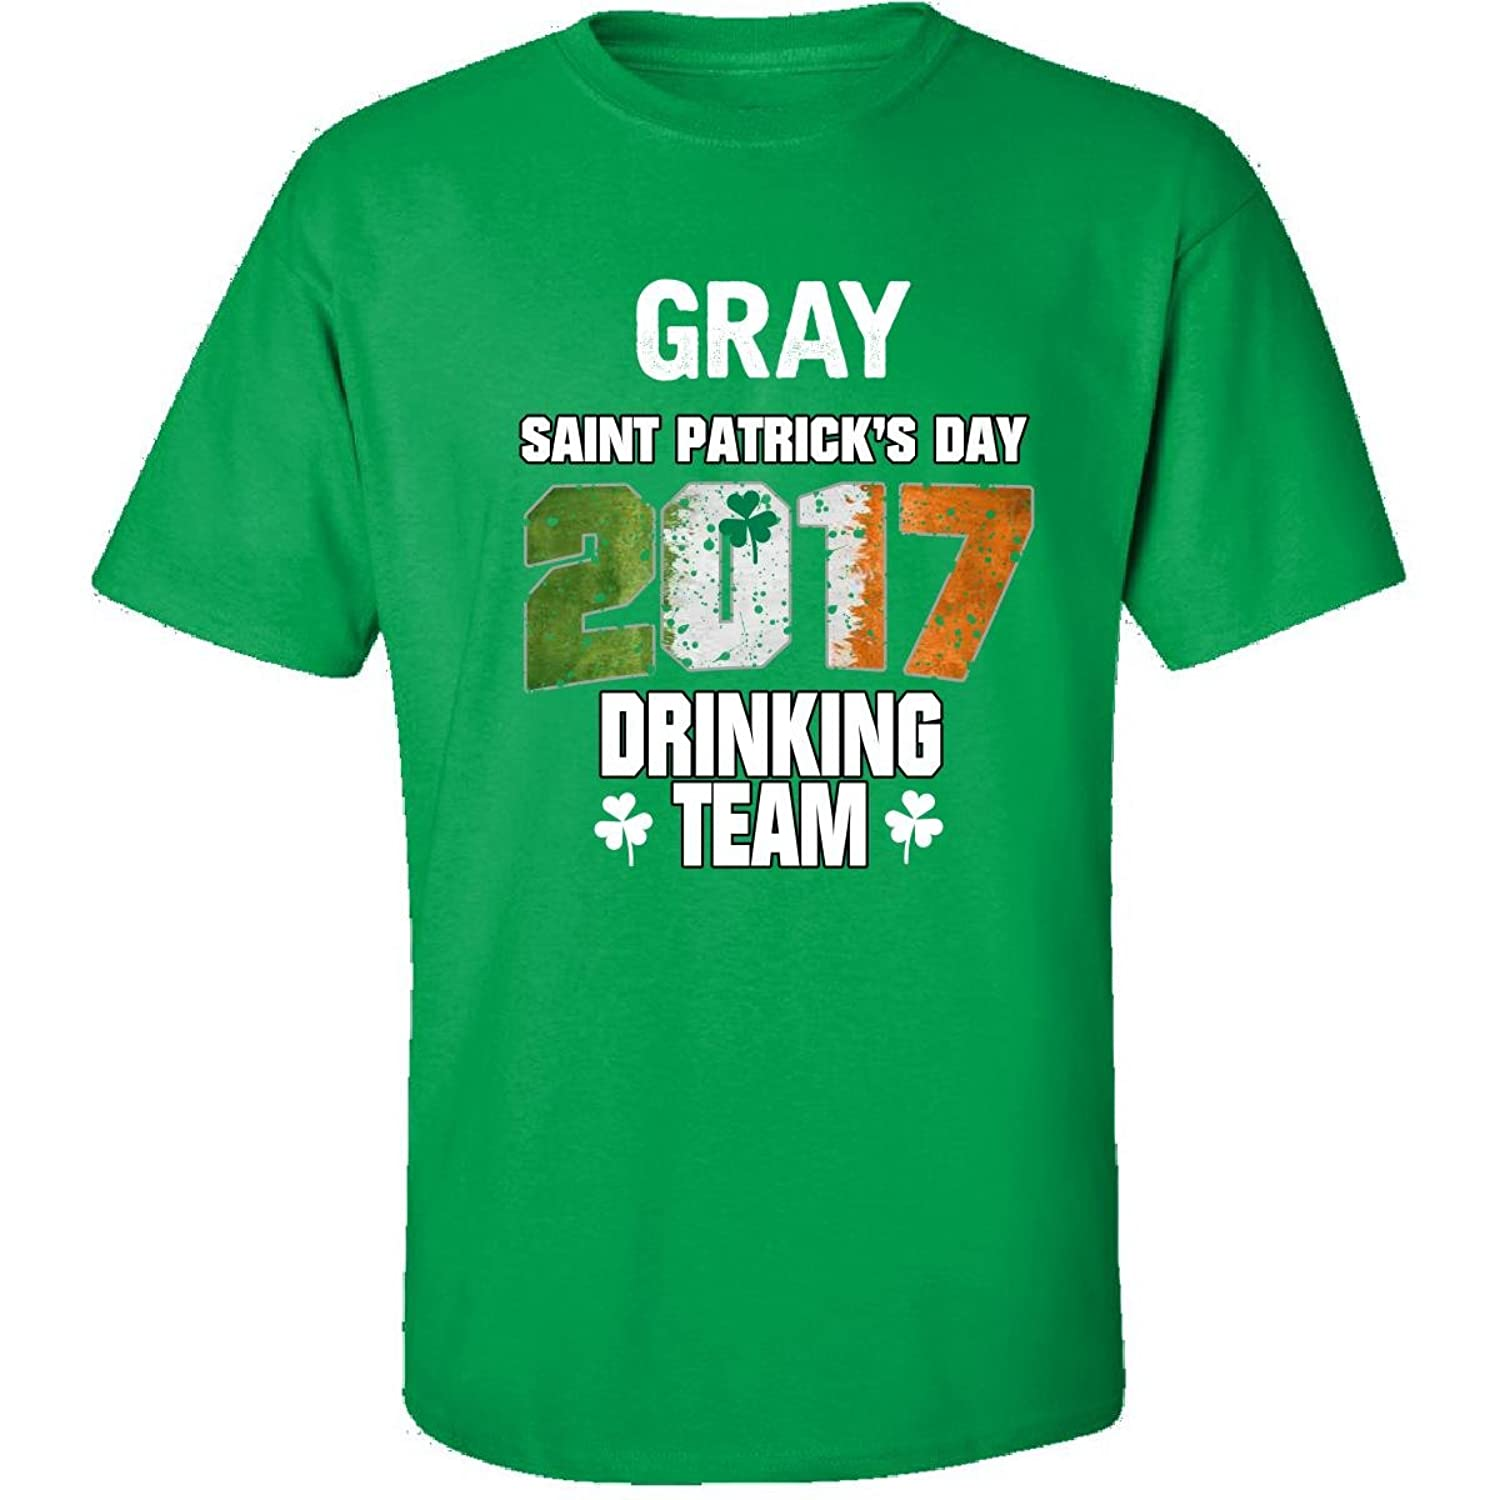 Gray Irish St Patricks Day 2017 Drinking Team - Adult Shirt